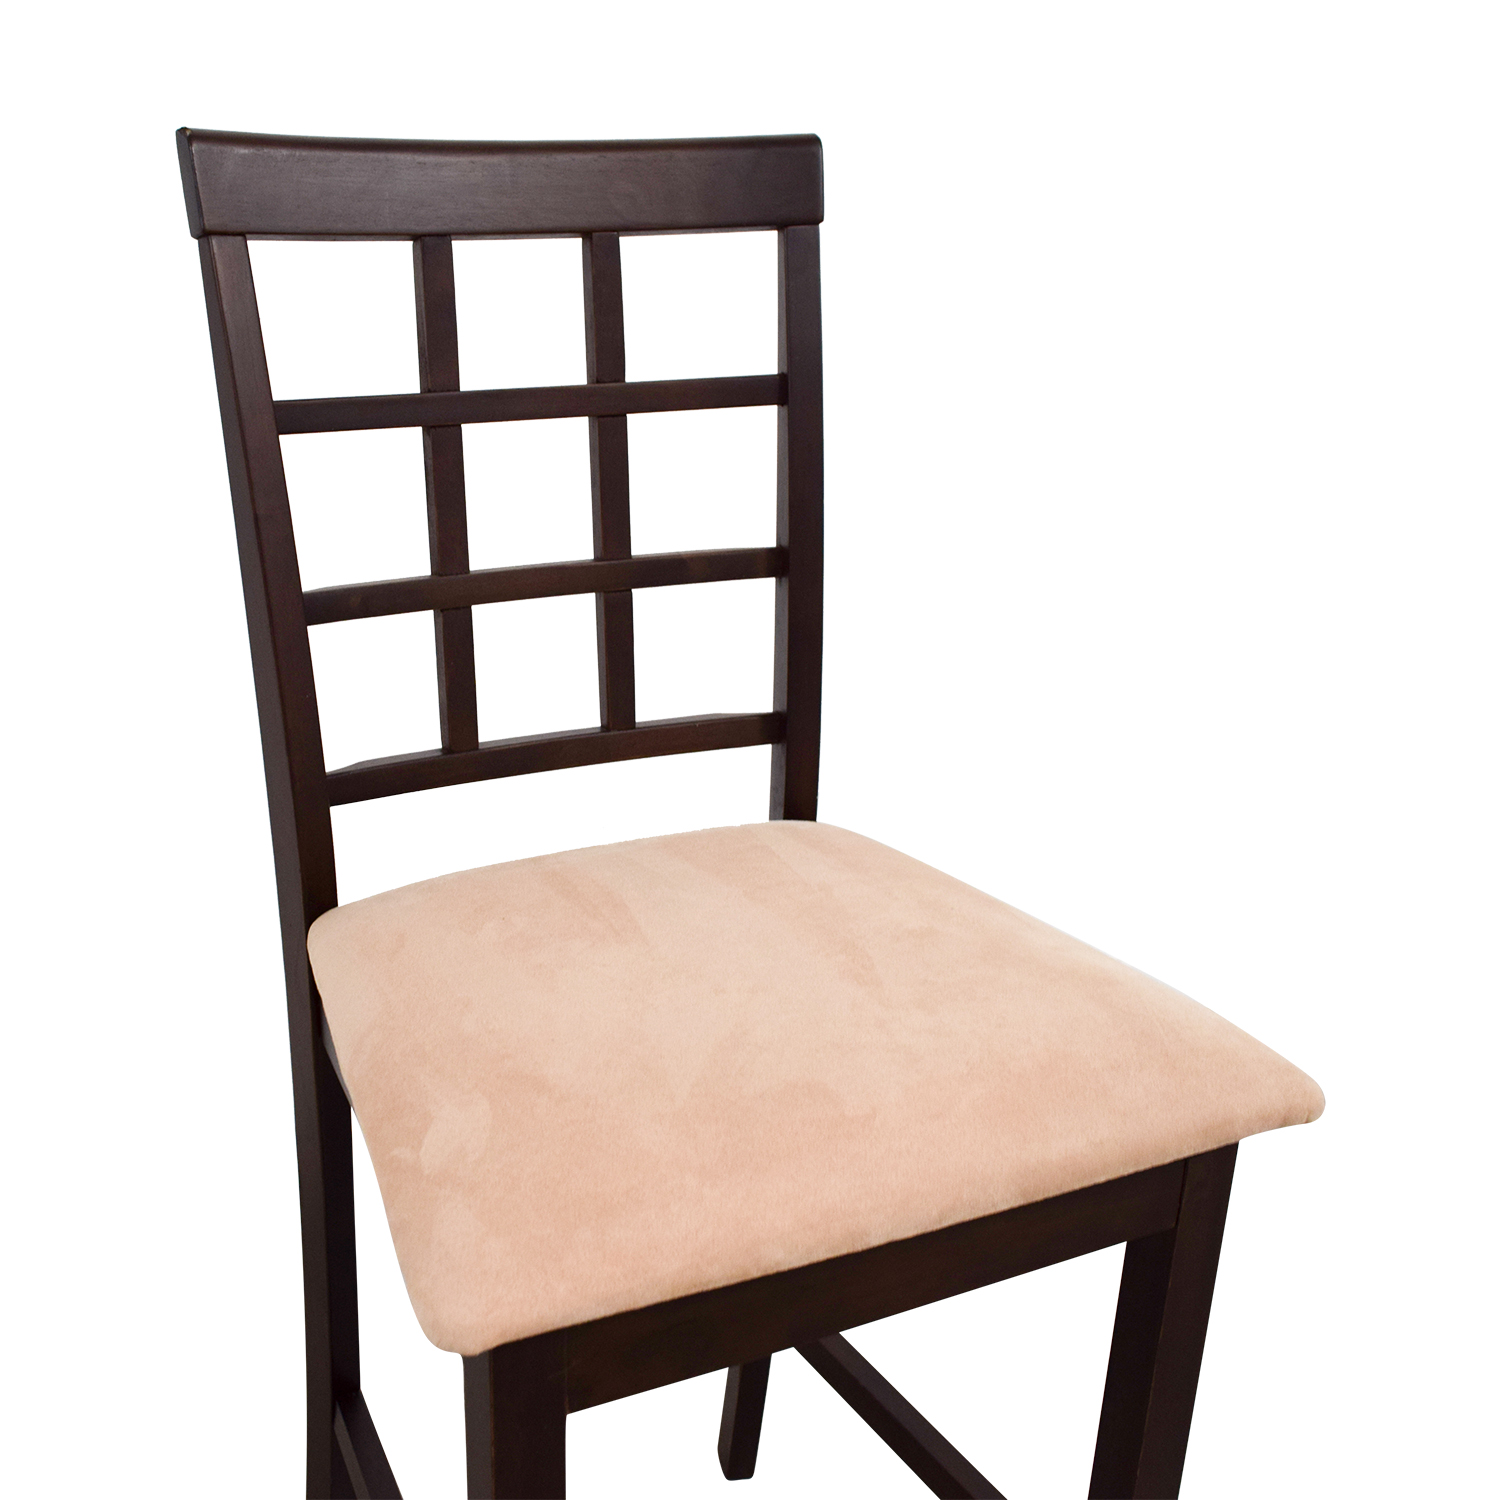 Counter Height Chair in Cappuccino and Tan Padded Seat / Chairs